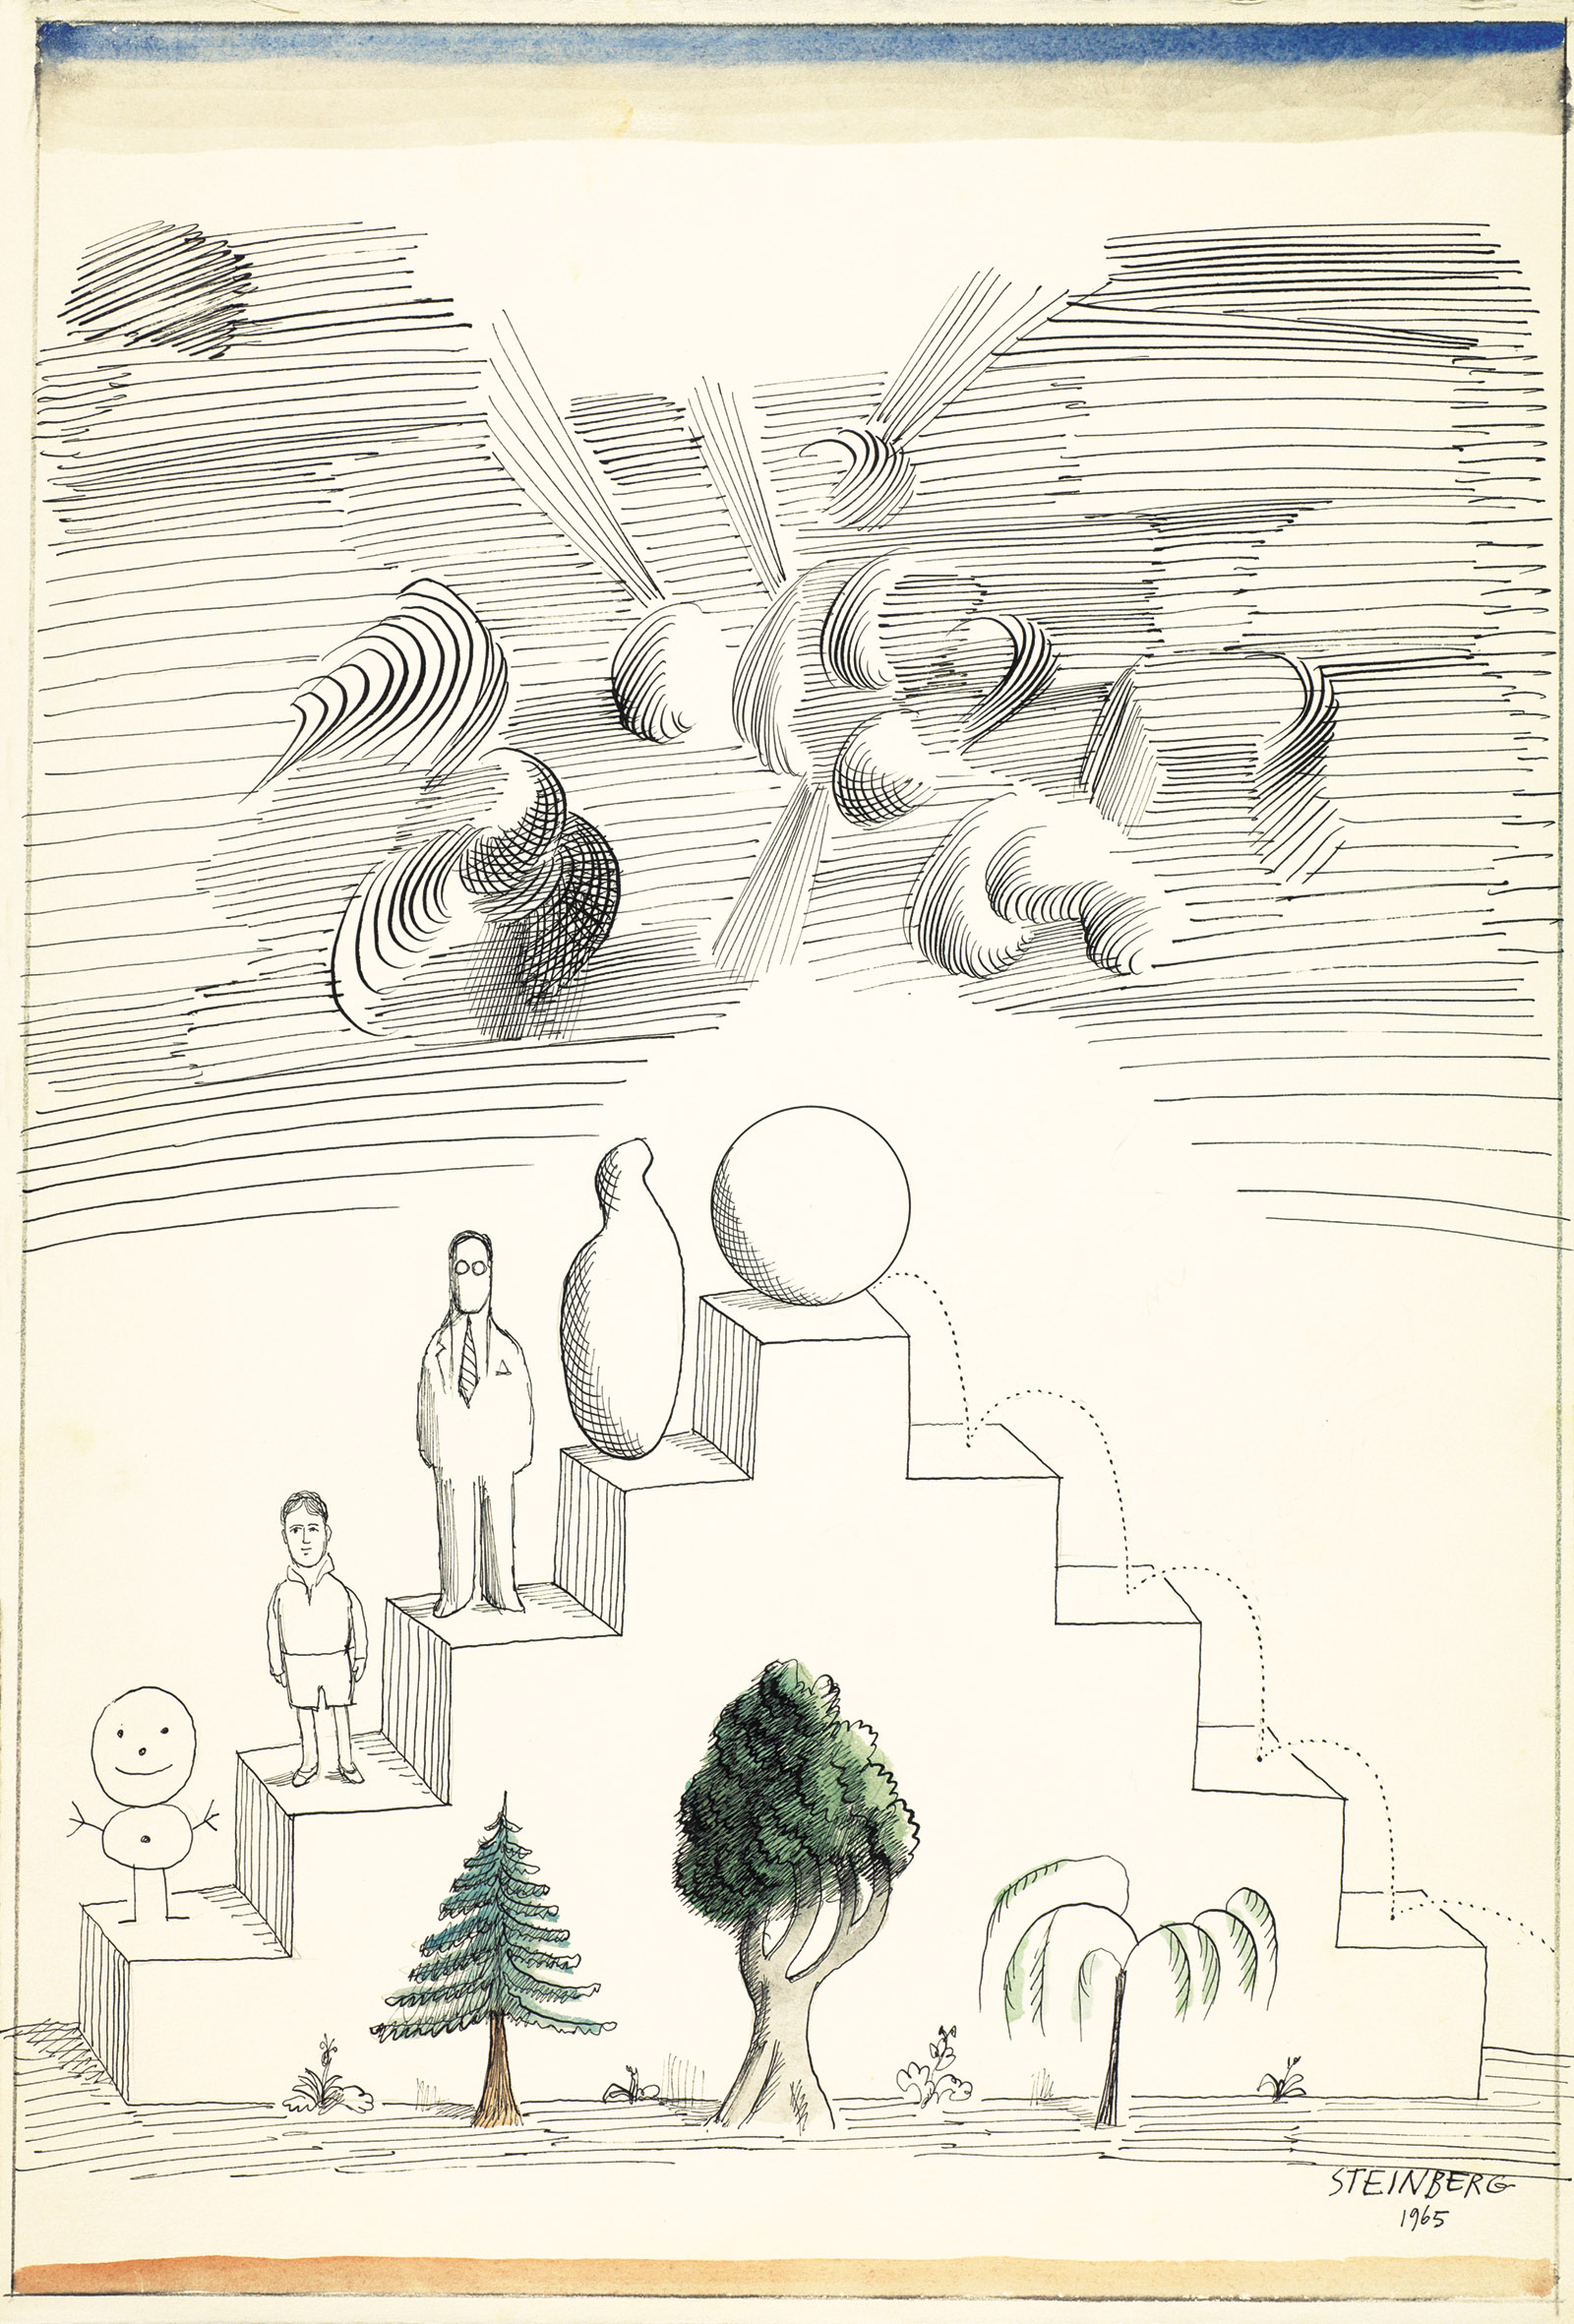 Biography, 1965; drawing by Saul Steinberg